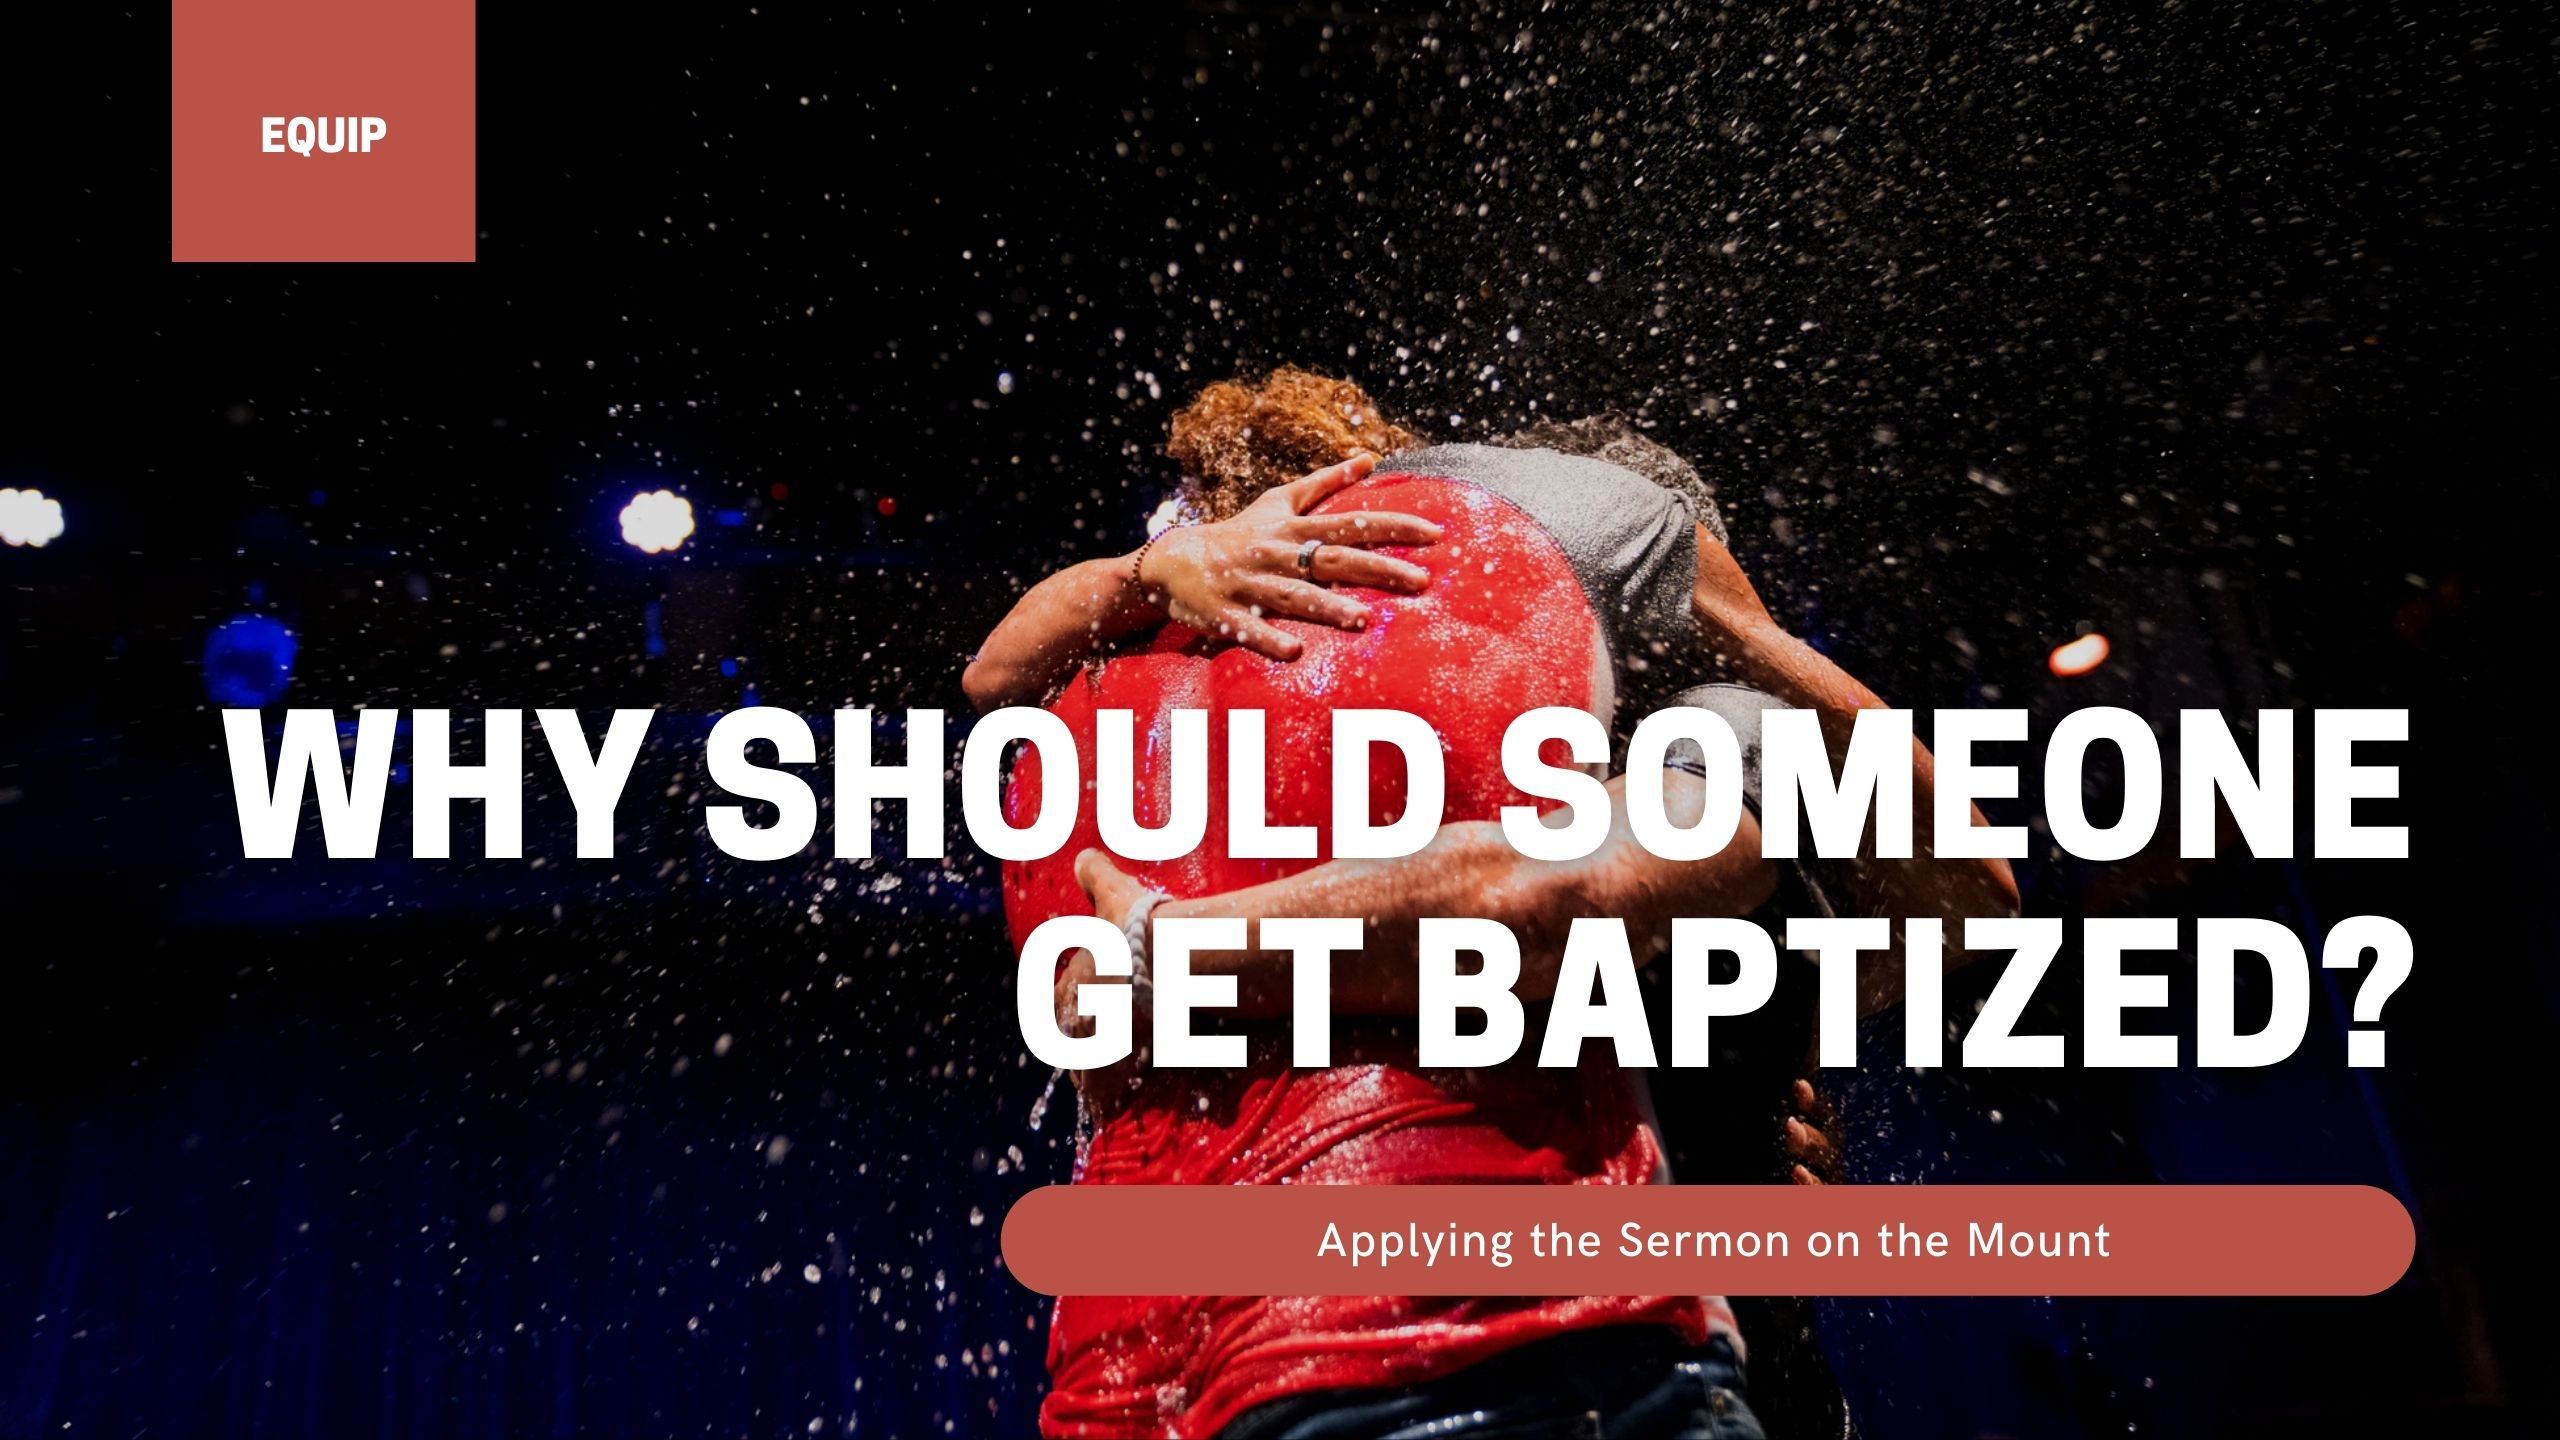 Why Should Someone Get Baptized?